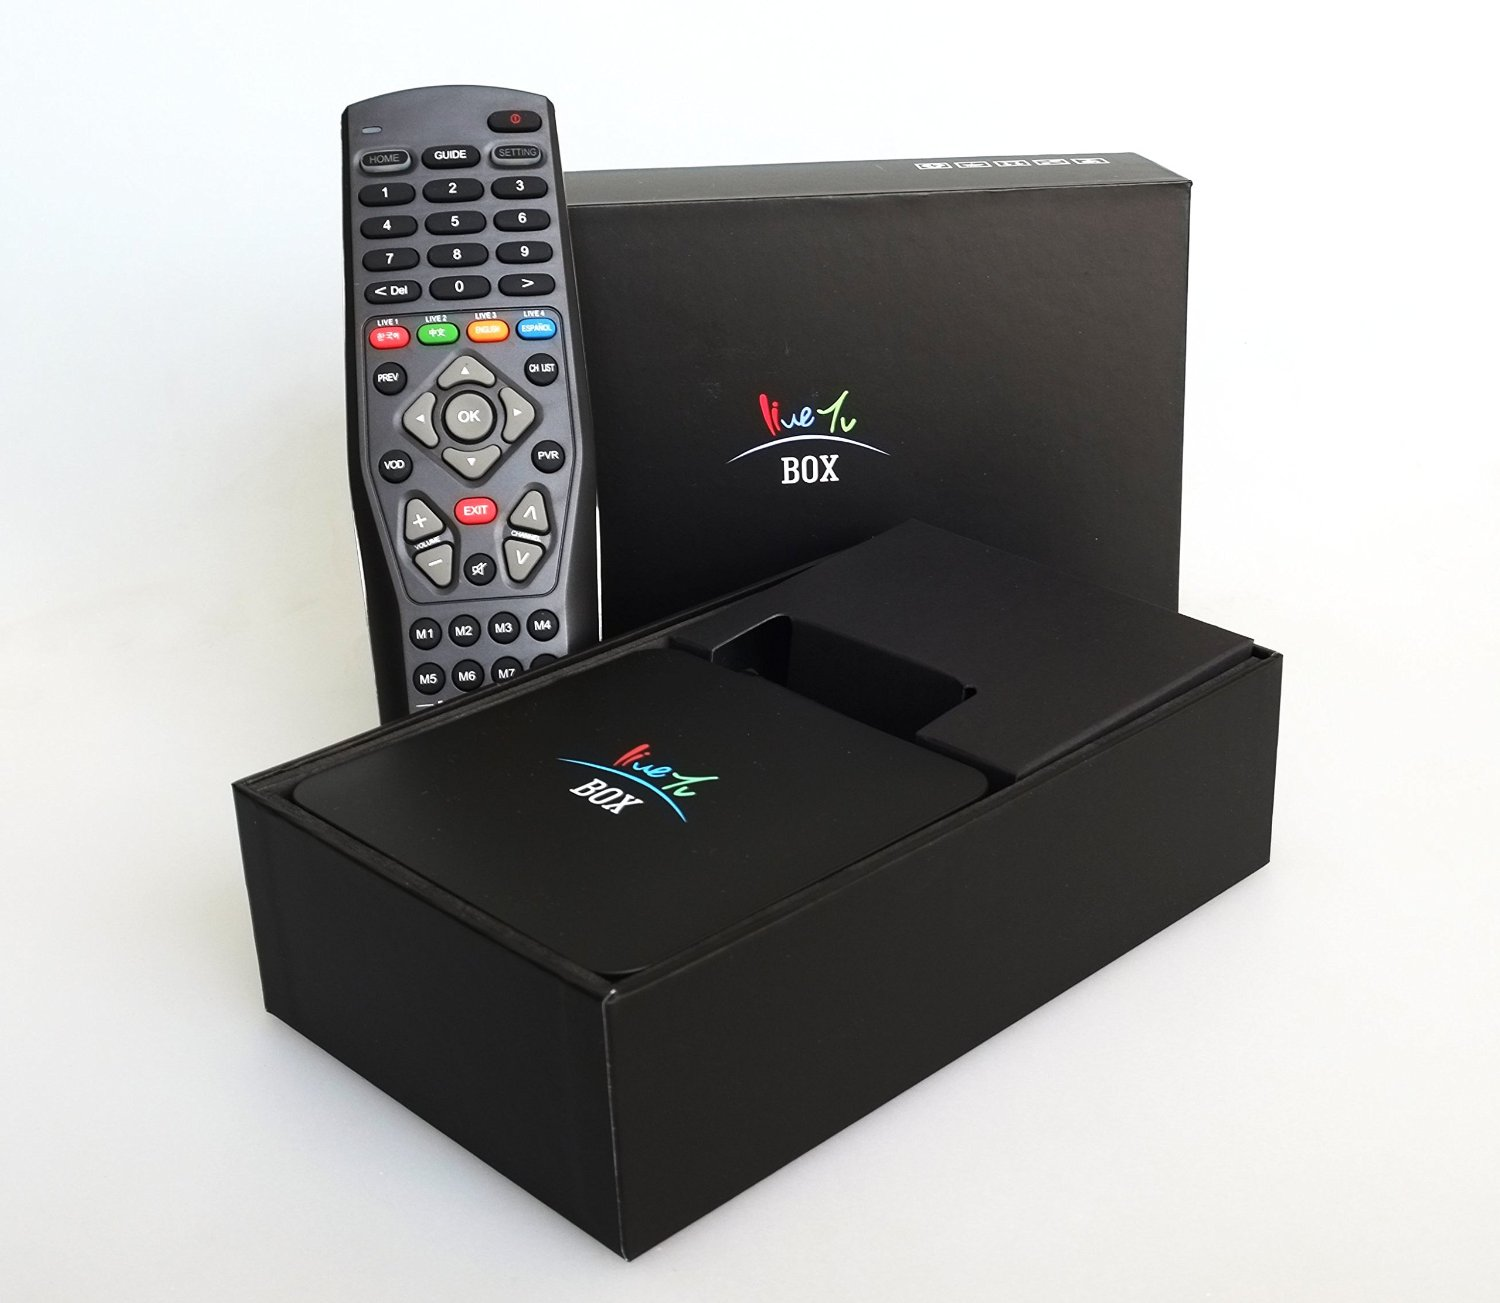 Home Tv Box - Chinese Live Smart Tv Box. Quad Core Streaming Media Player